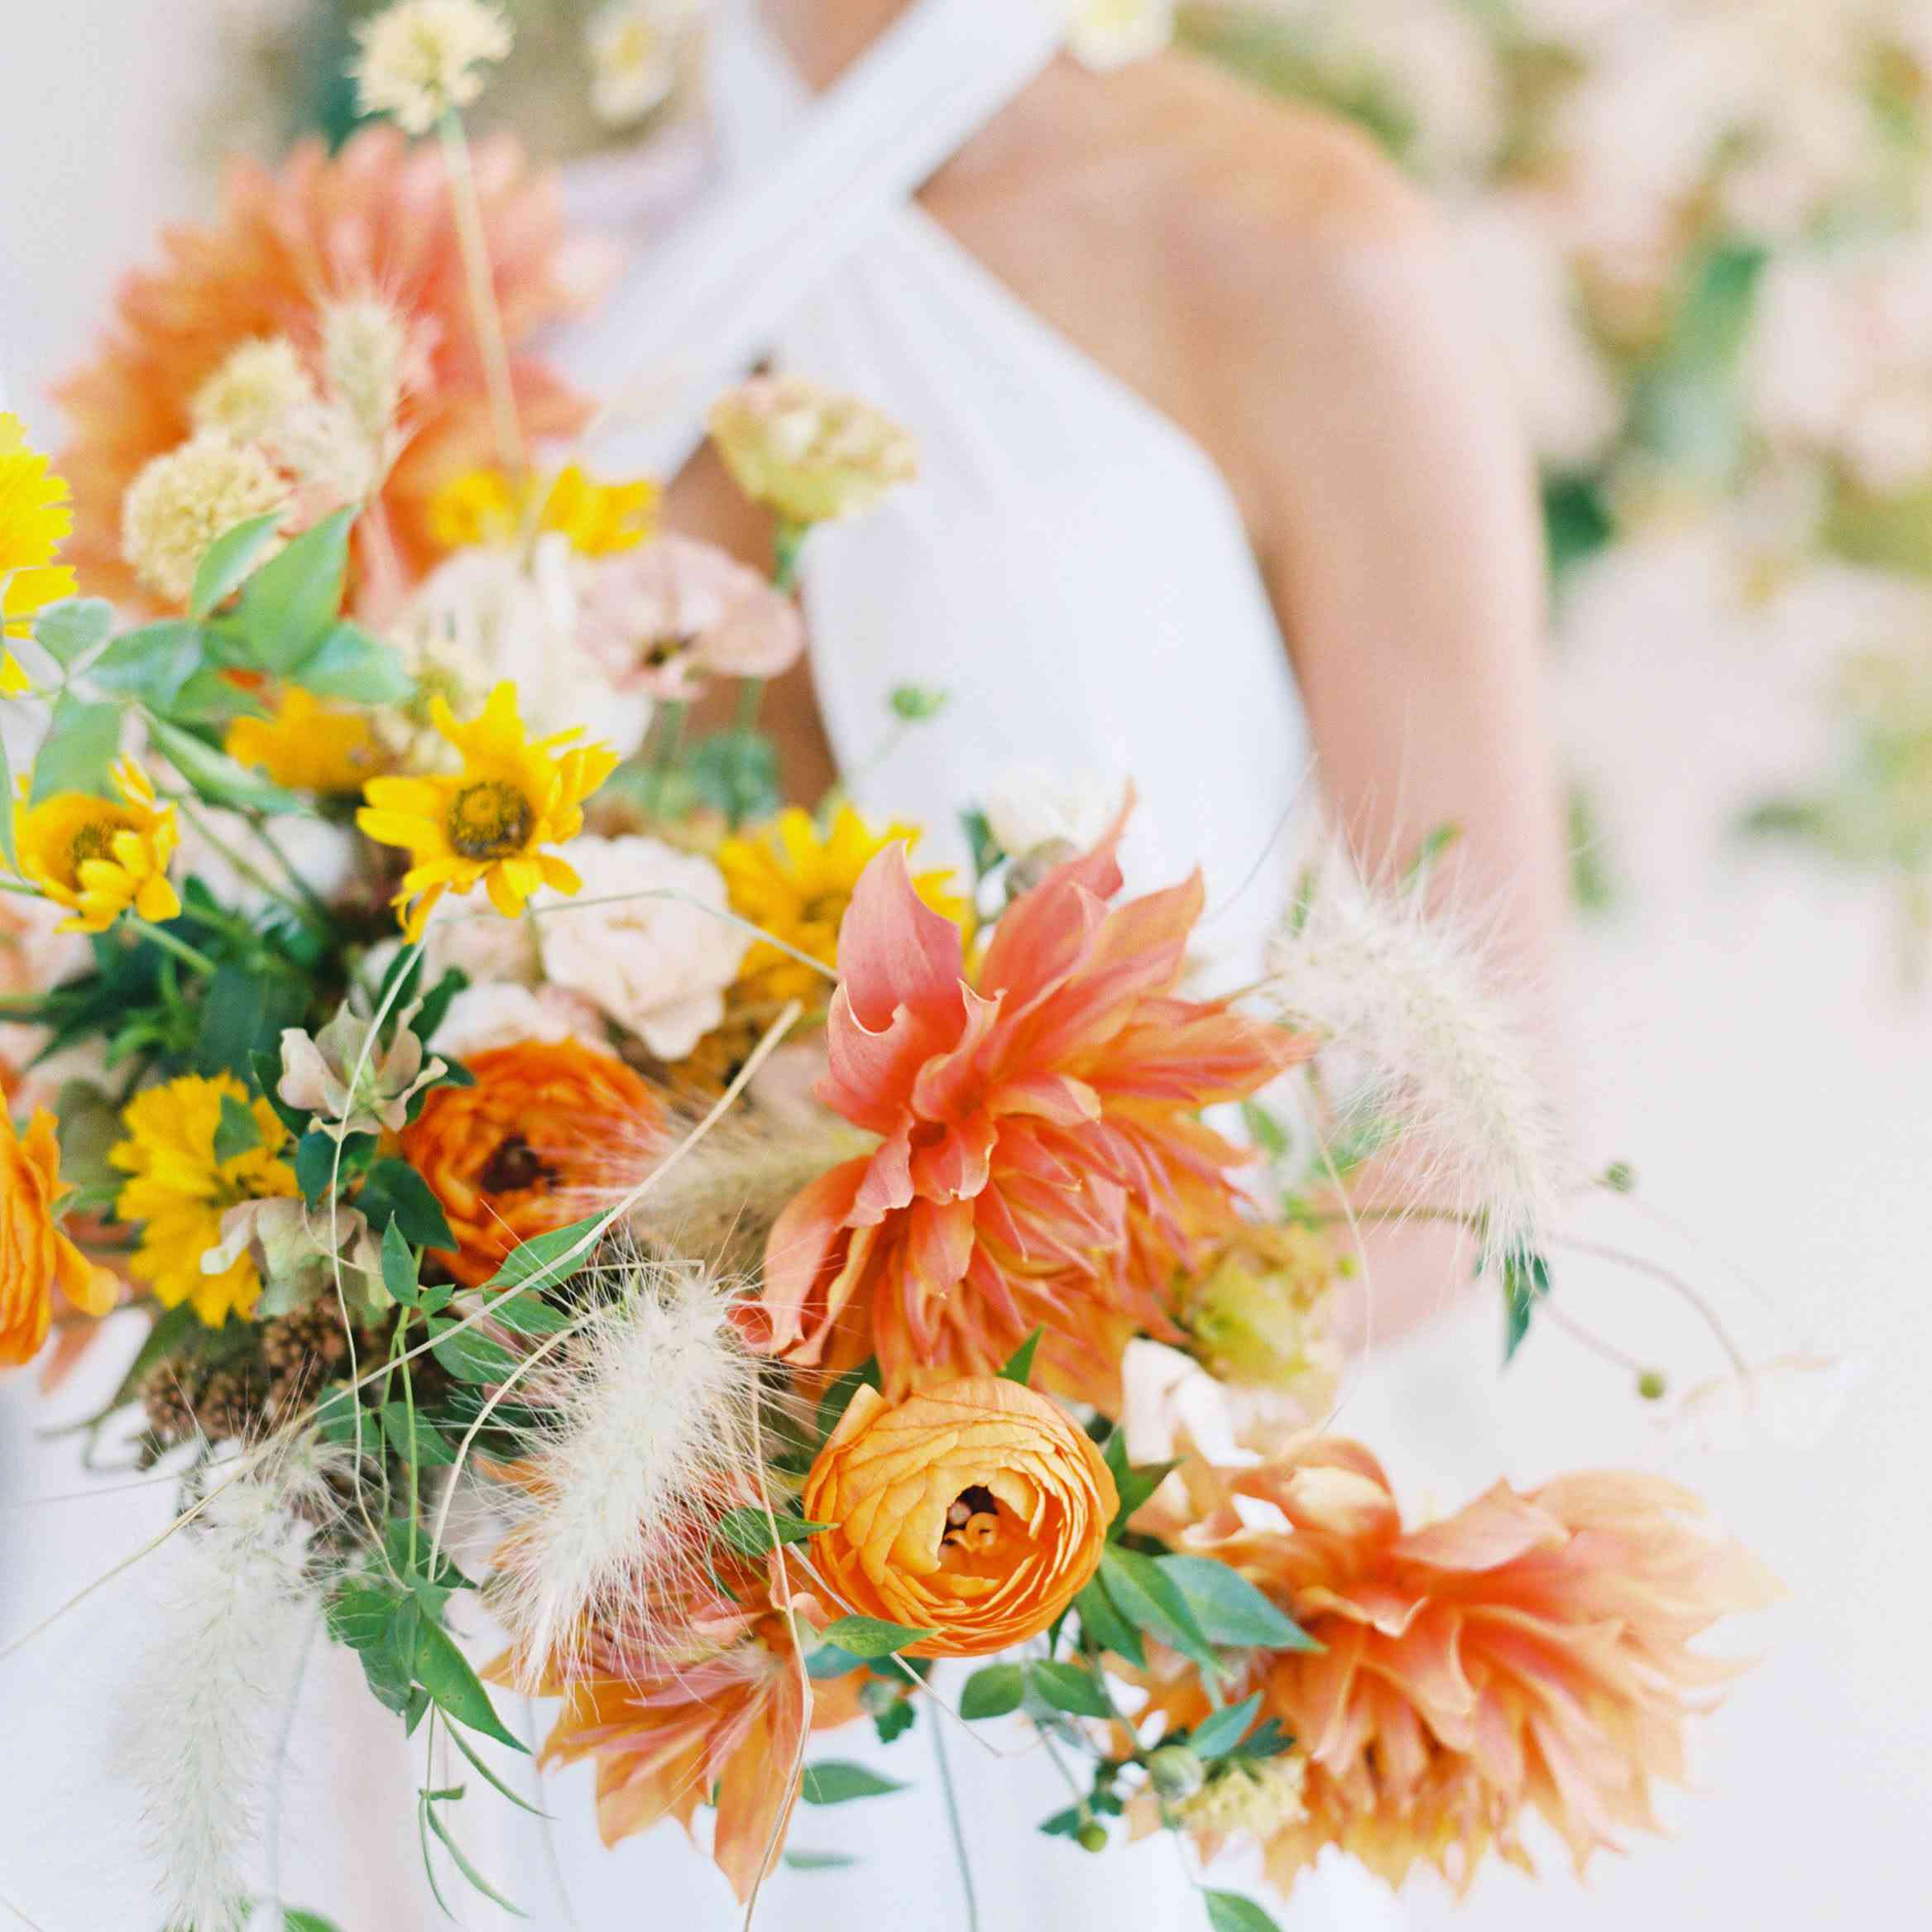 Fall bridal bouquet made up of ranunculus and dahlias